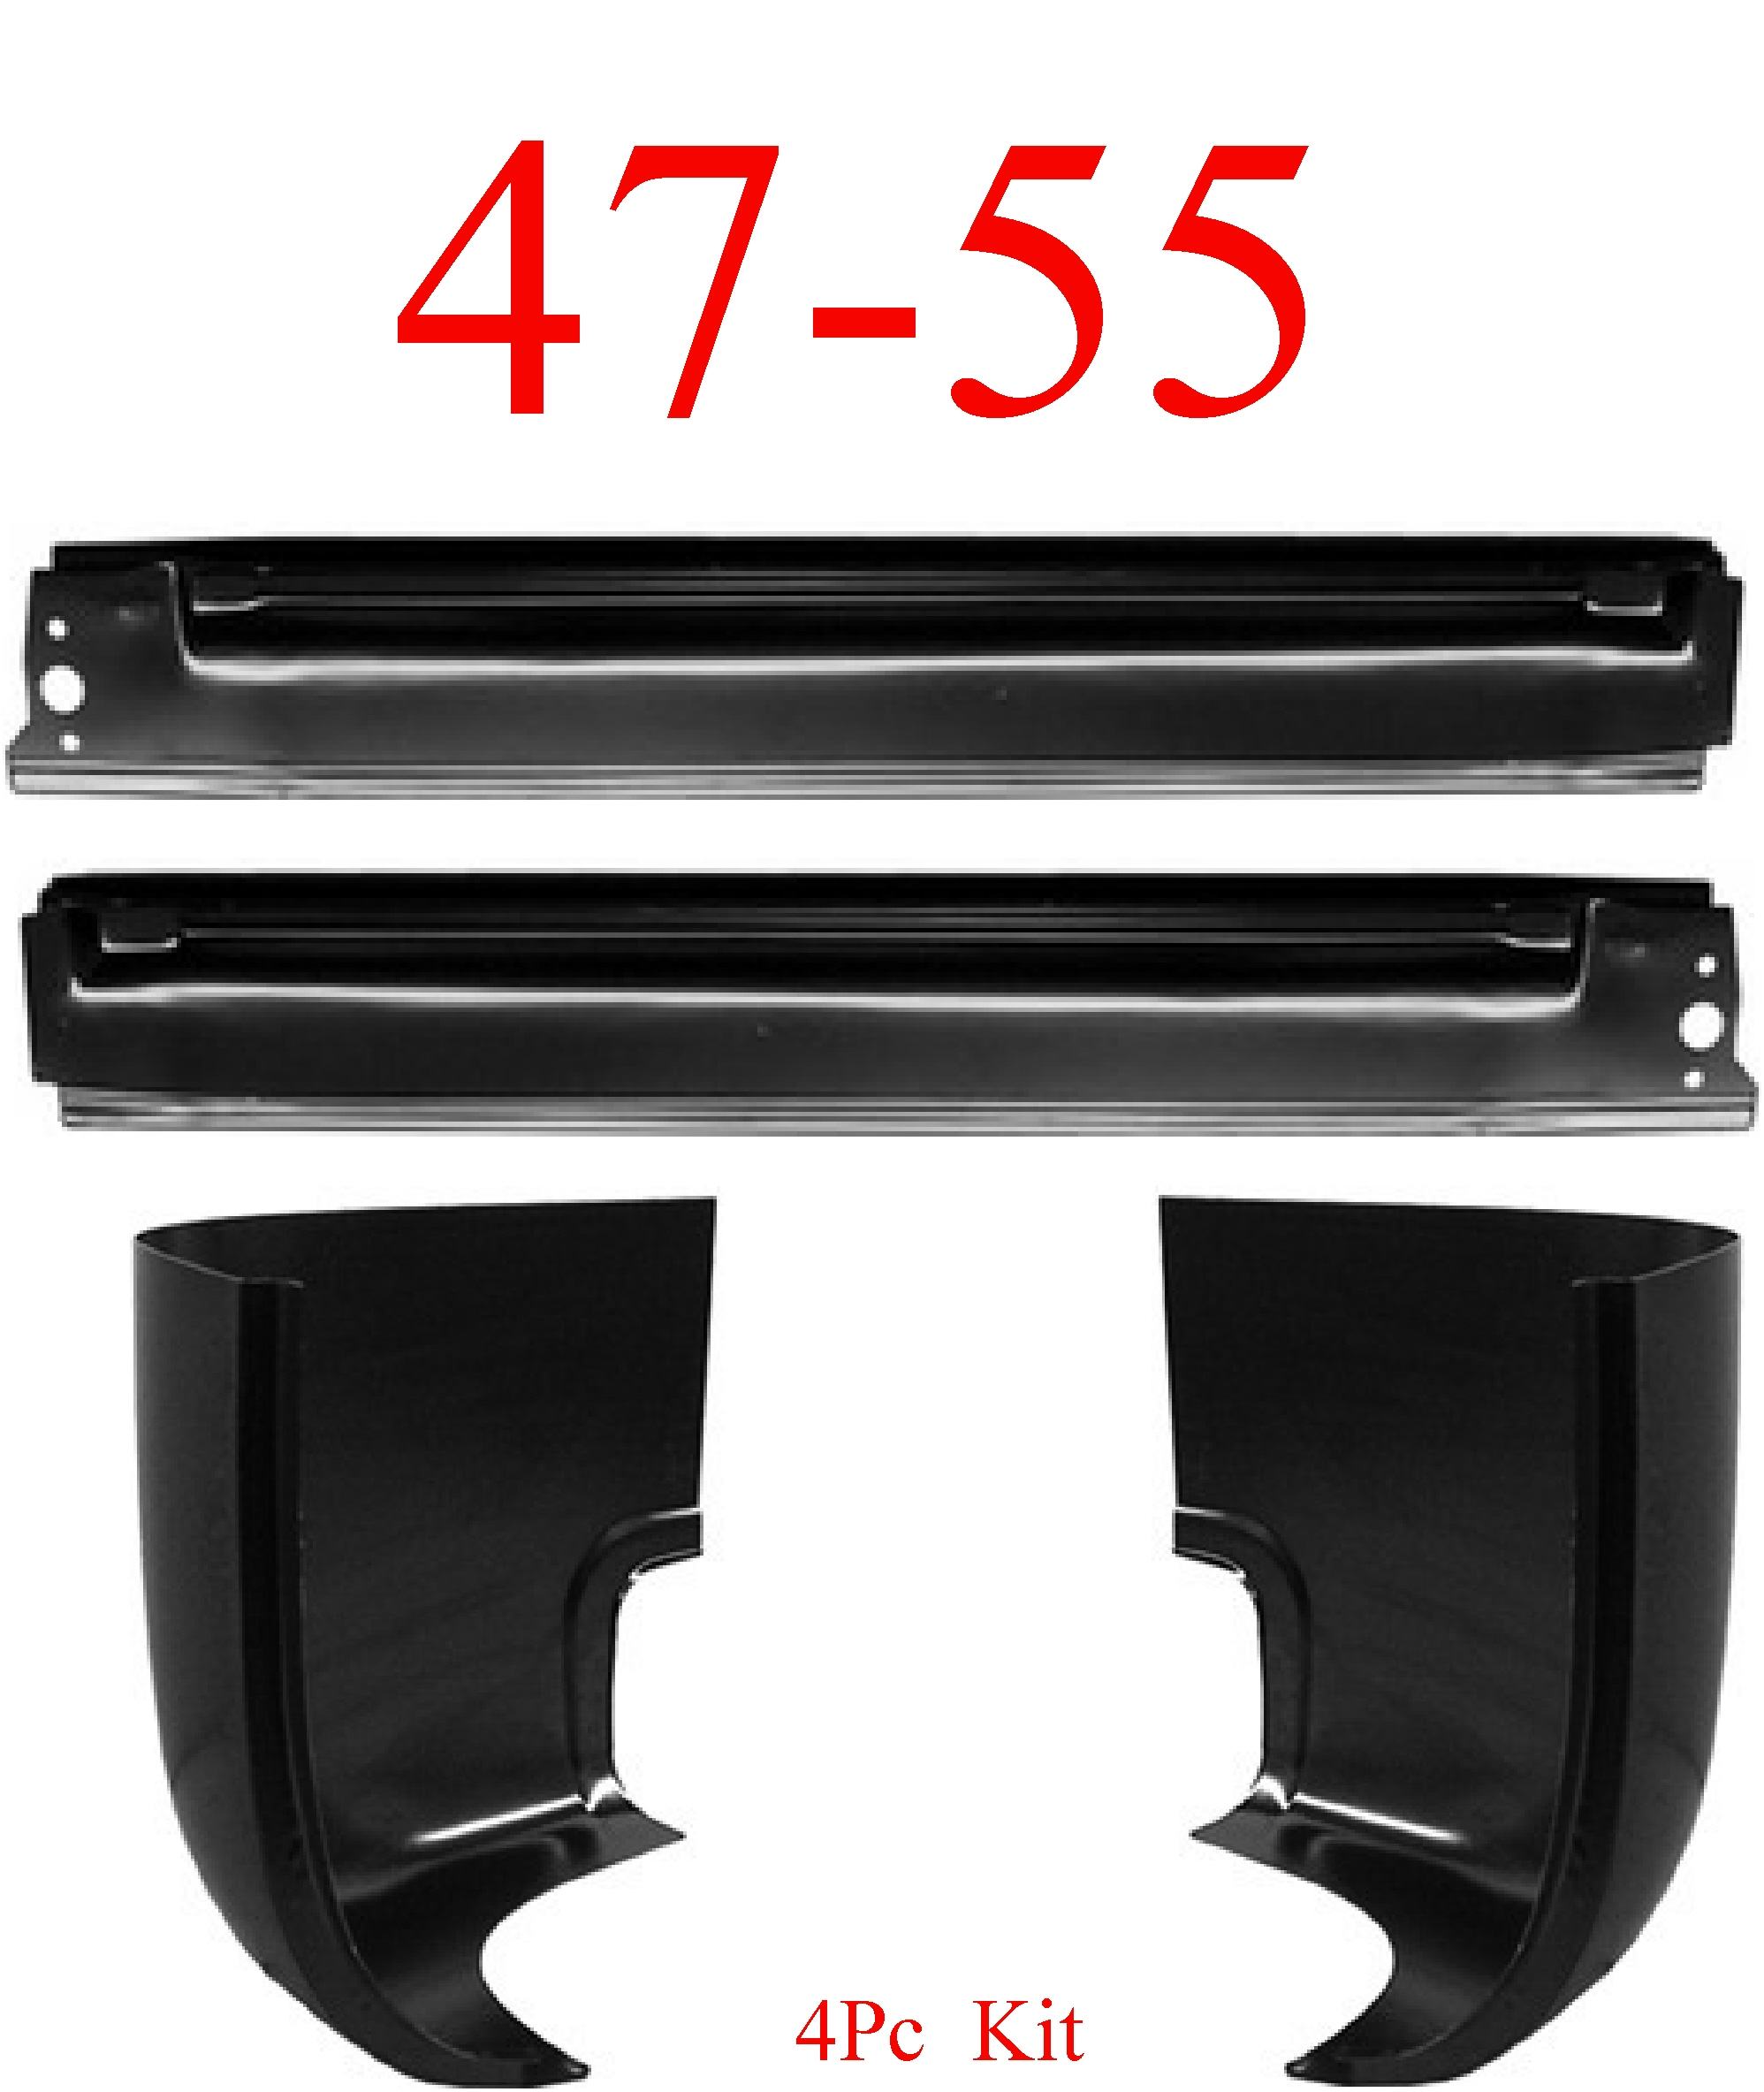 47-55 Chevy GMC 4Pc Extended Rocker & Cab Corner Kit, 1st Design